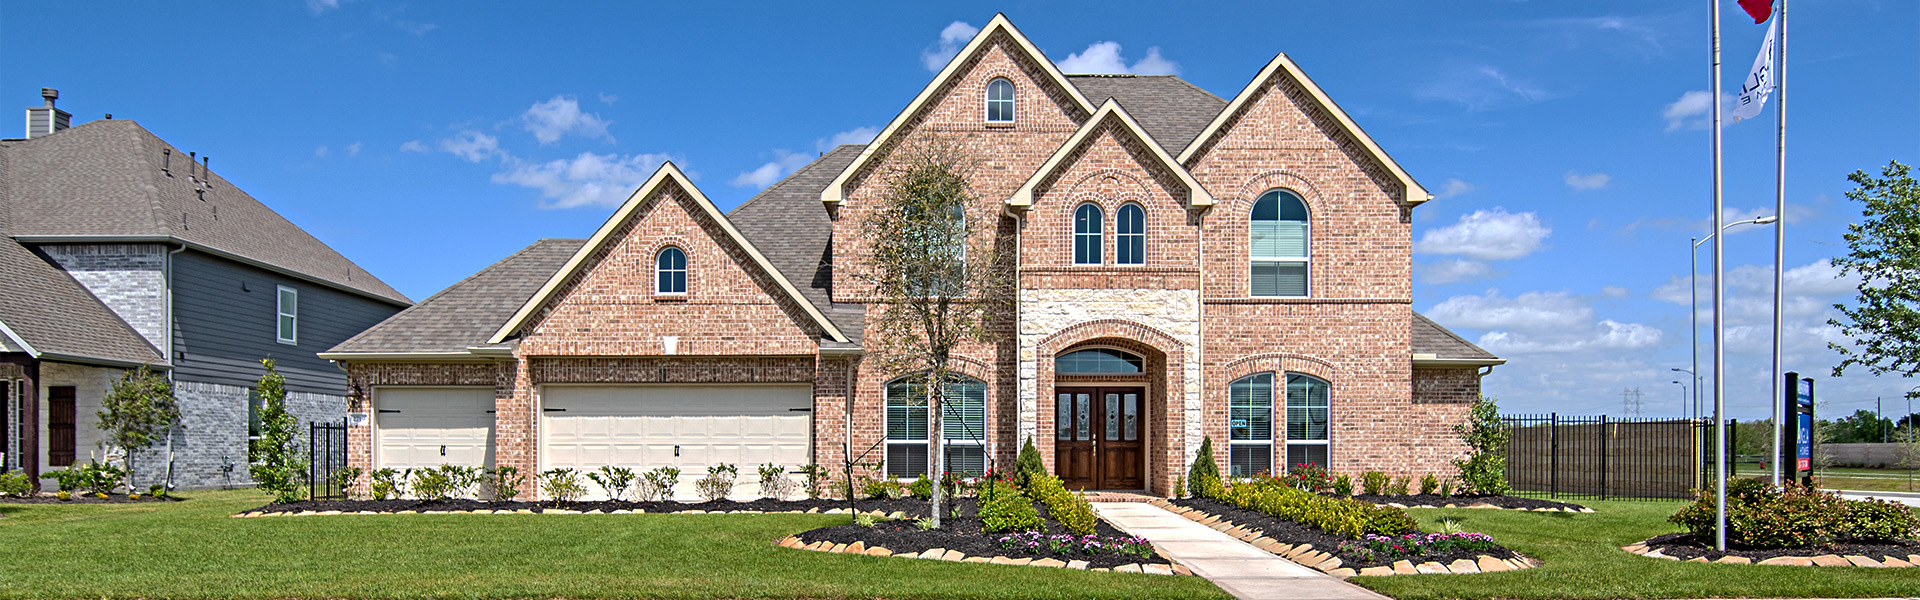 Brand new ranch-style homes in Iowa Colony TX